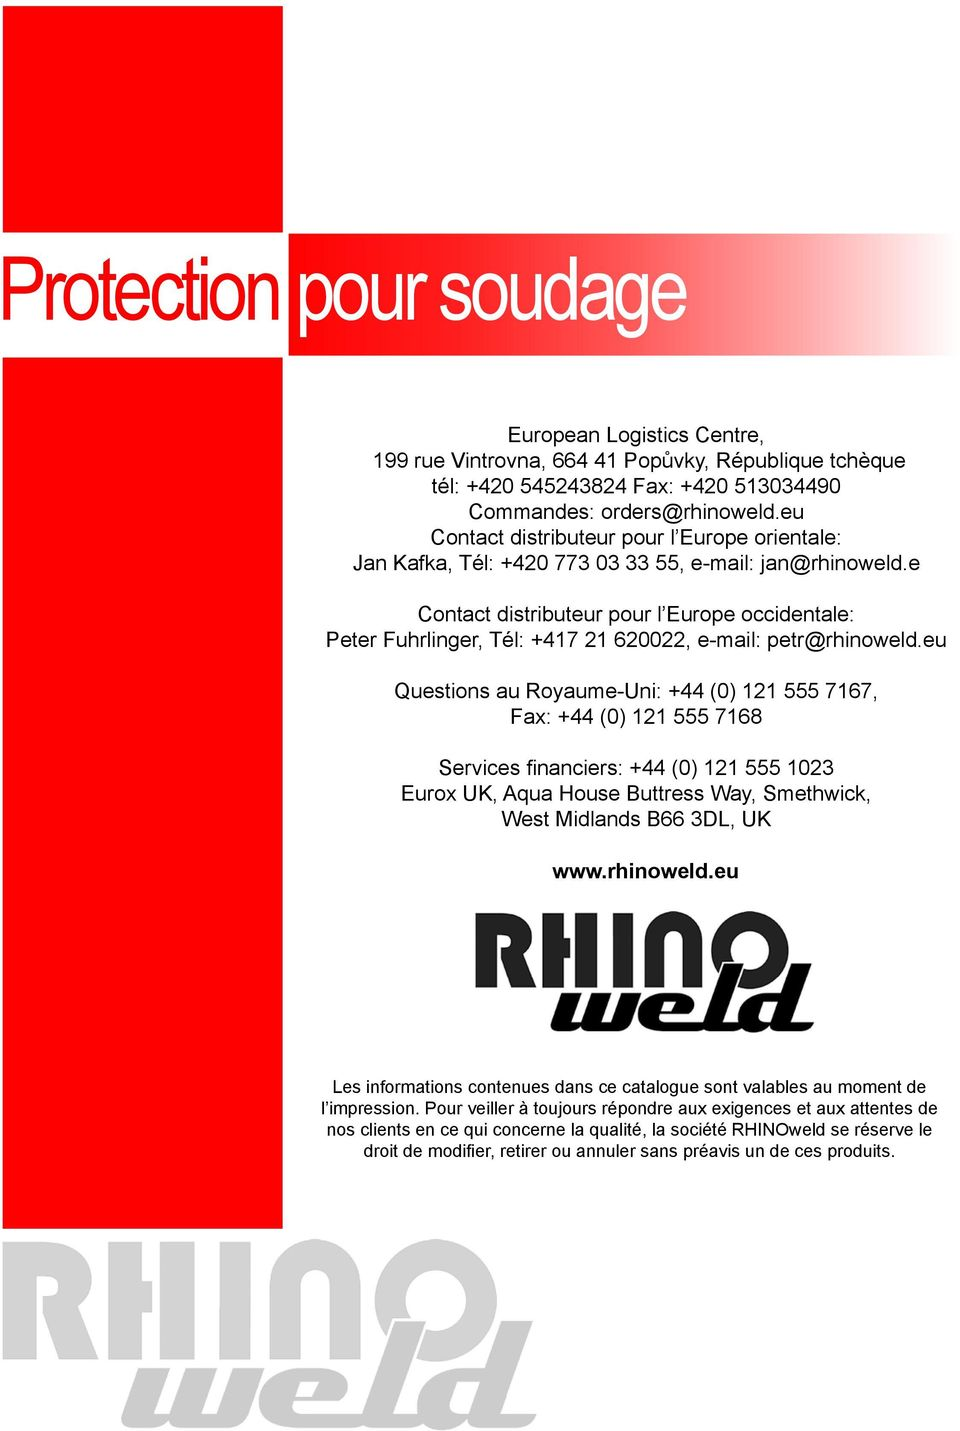 e Contact distributeur pour l Europe occidentale: Peter Fuhrlinger, Tél: +417 21 620022, e-mail: petr@rhinoweld.